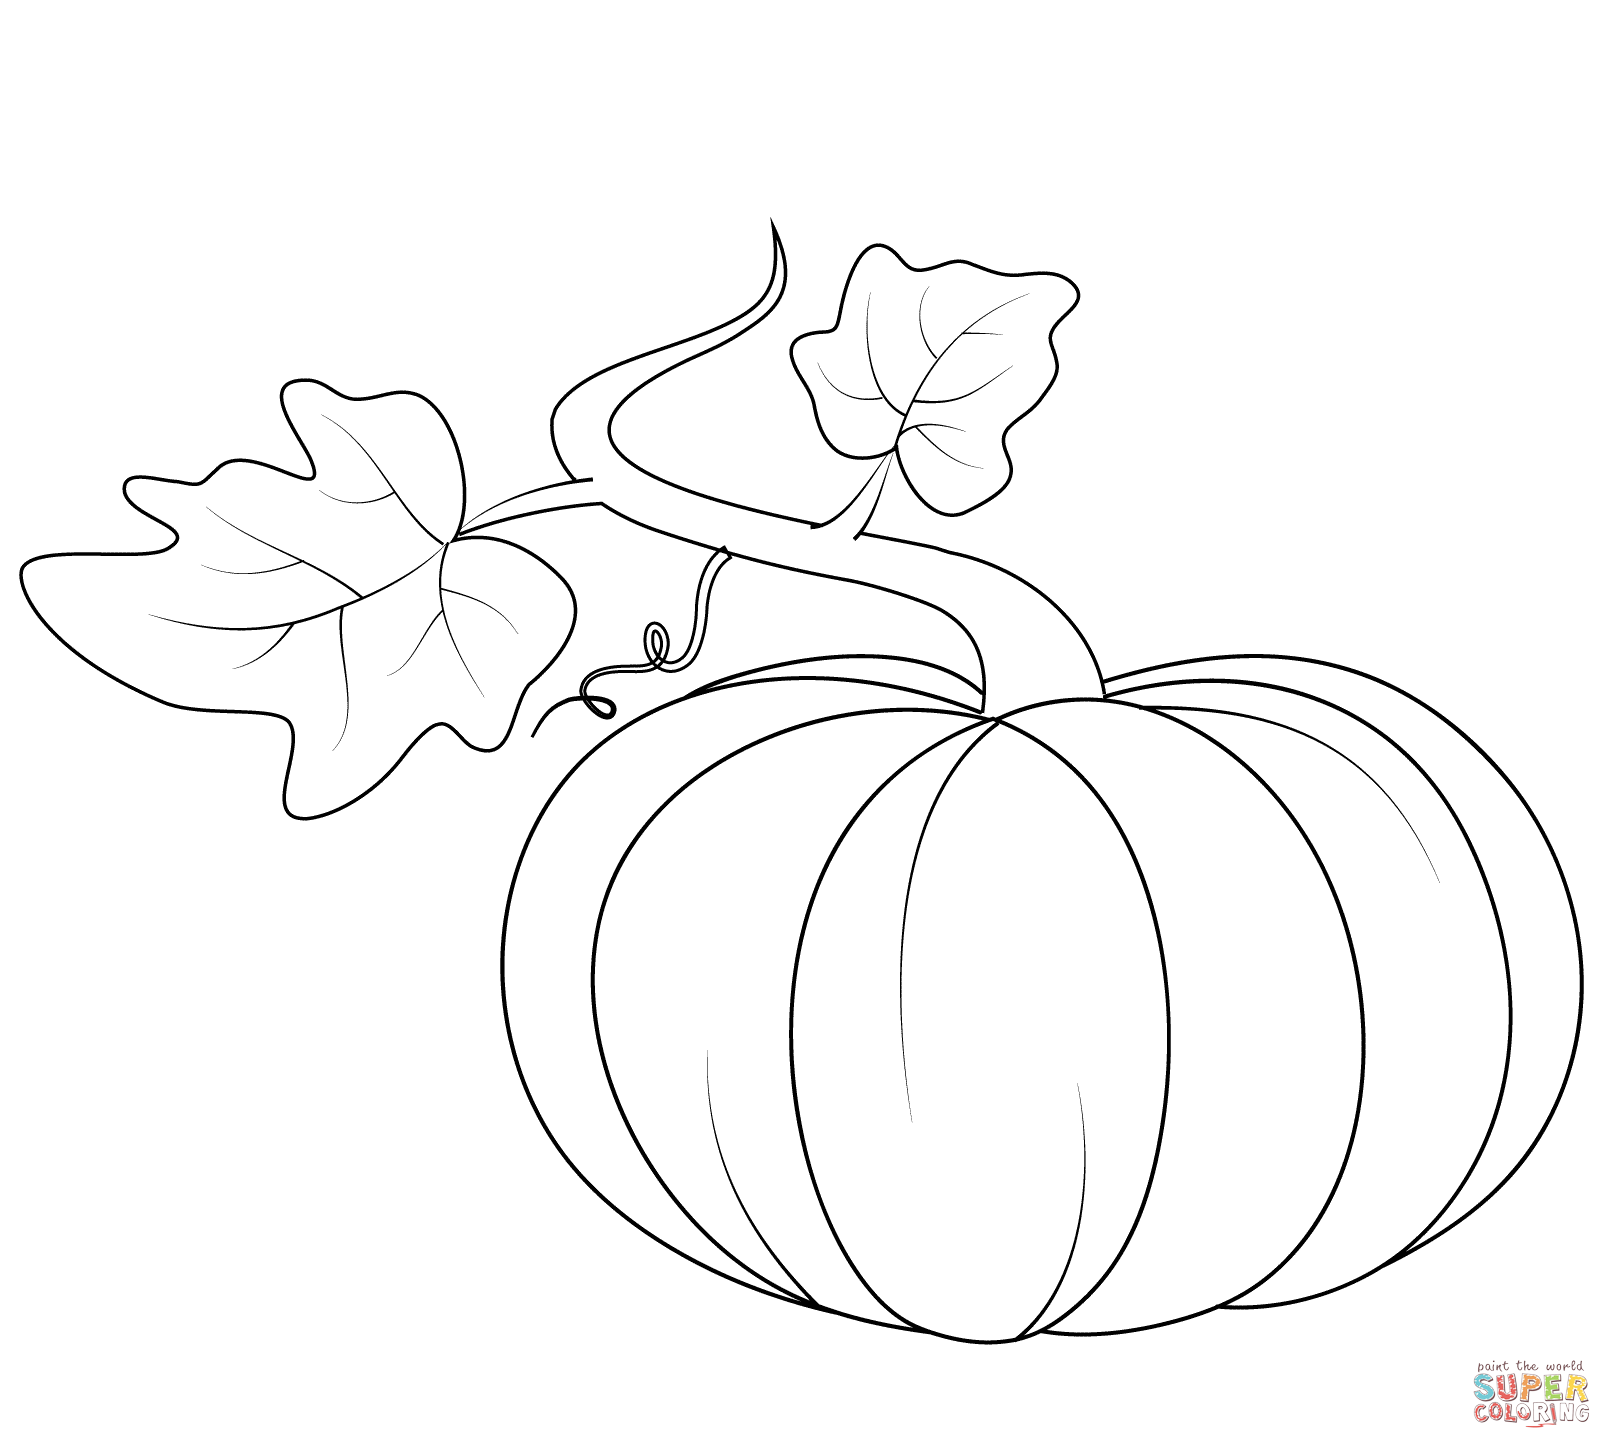 Uncategorized Drawings Of Pumpkins pro fall pumpkin drawing autumn draw drawing